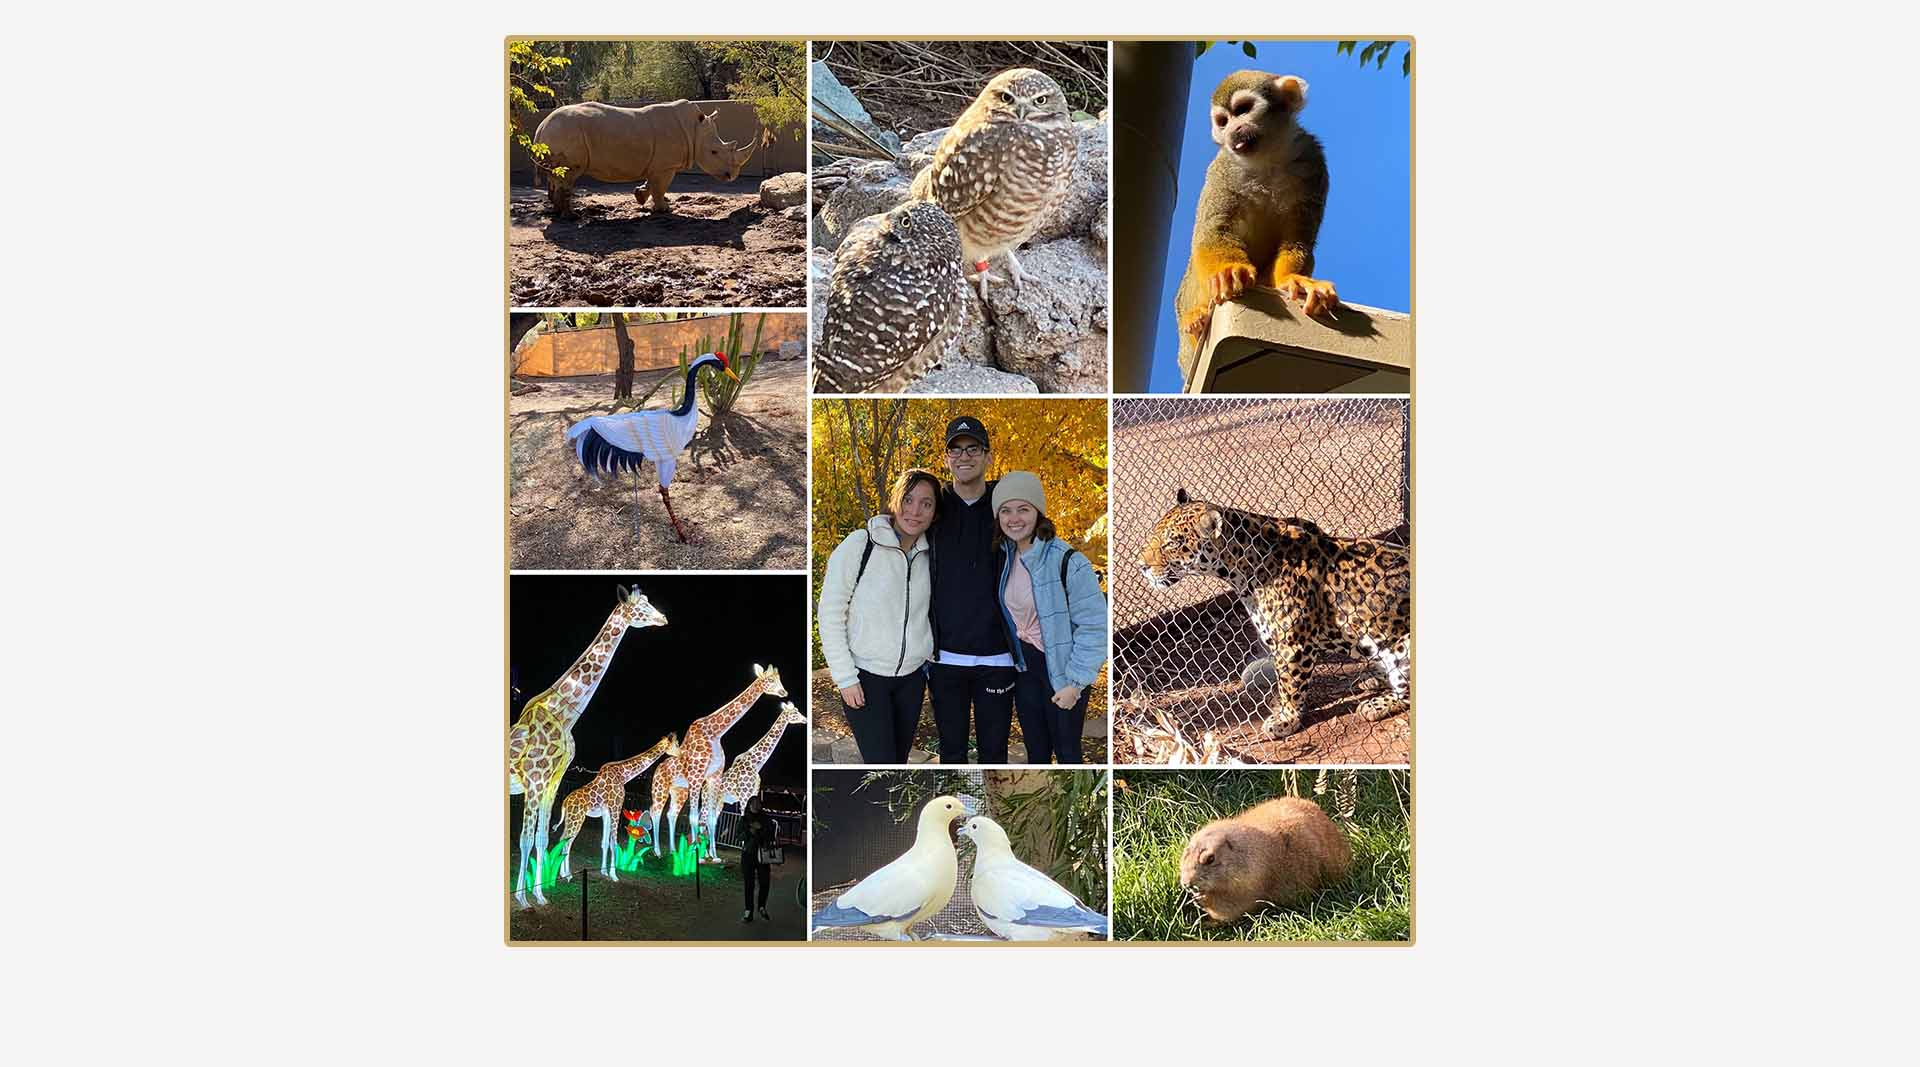 Photo collage created by Clamshell Communications - Images from the Phoenix Zoo